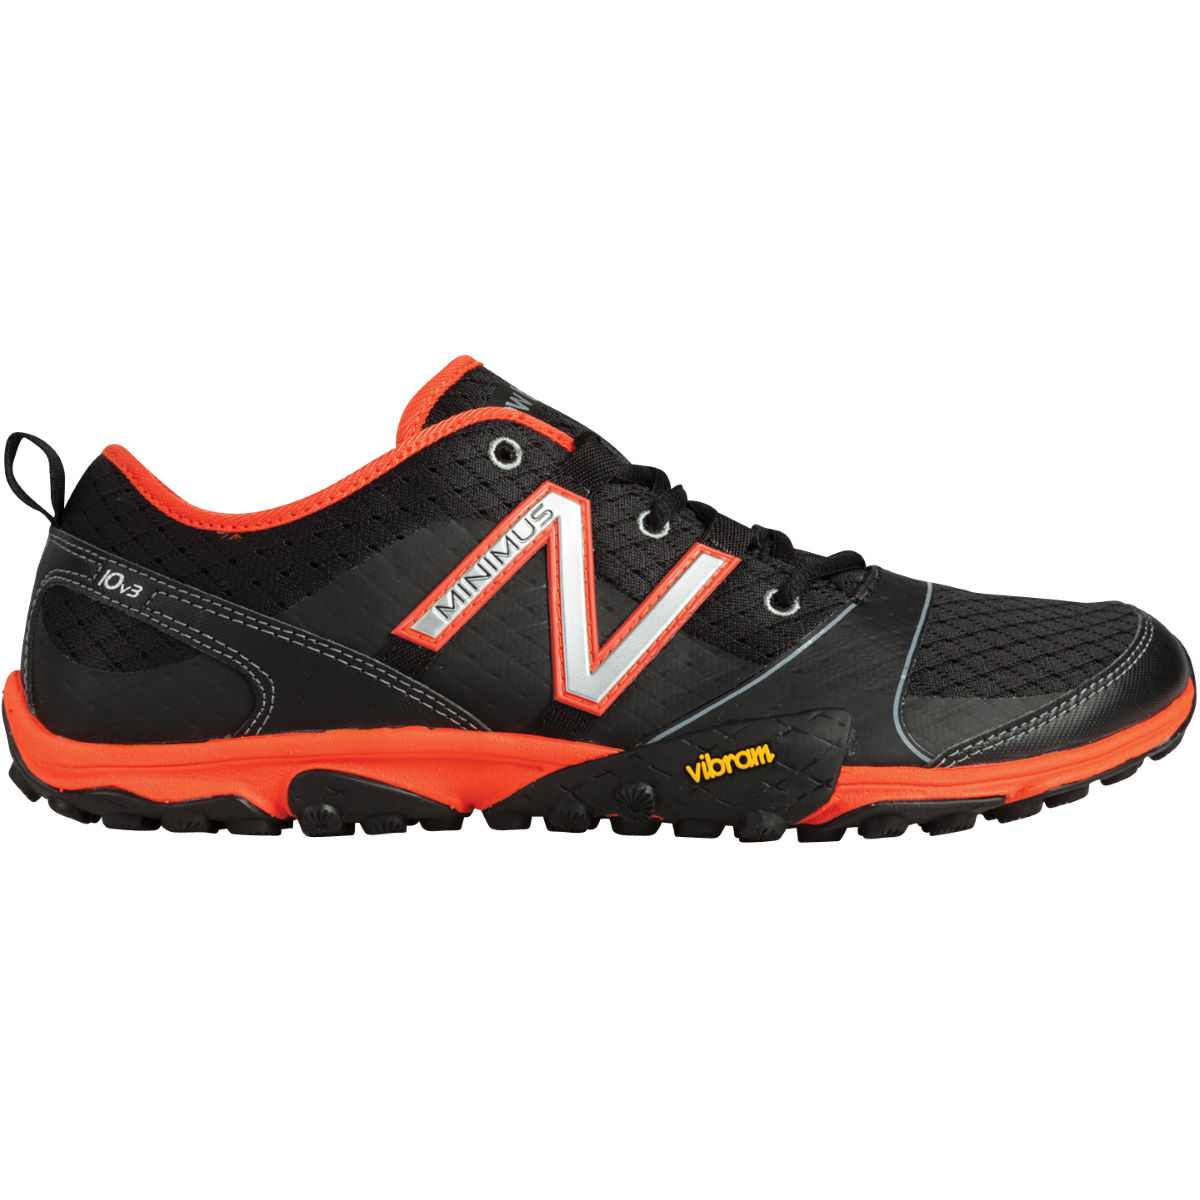 New Balance Minimus Trail 10v3 Shoes (SS16)